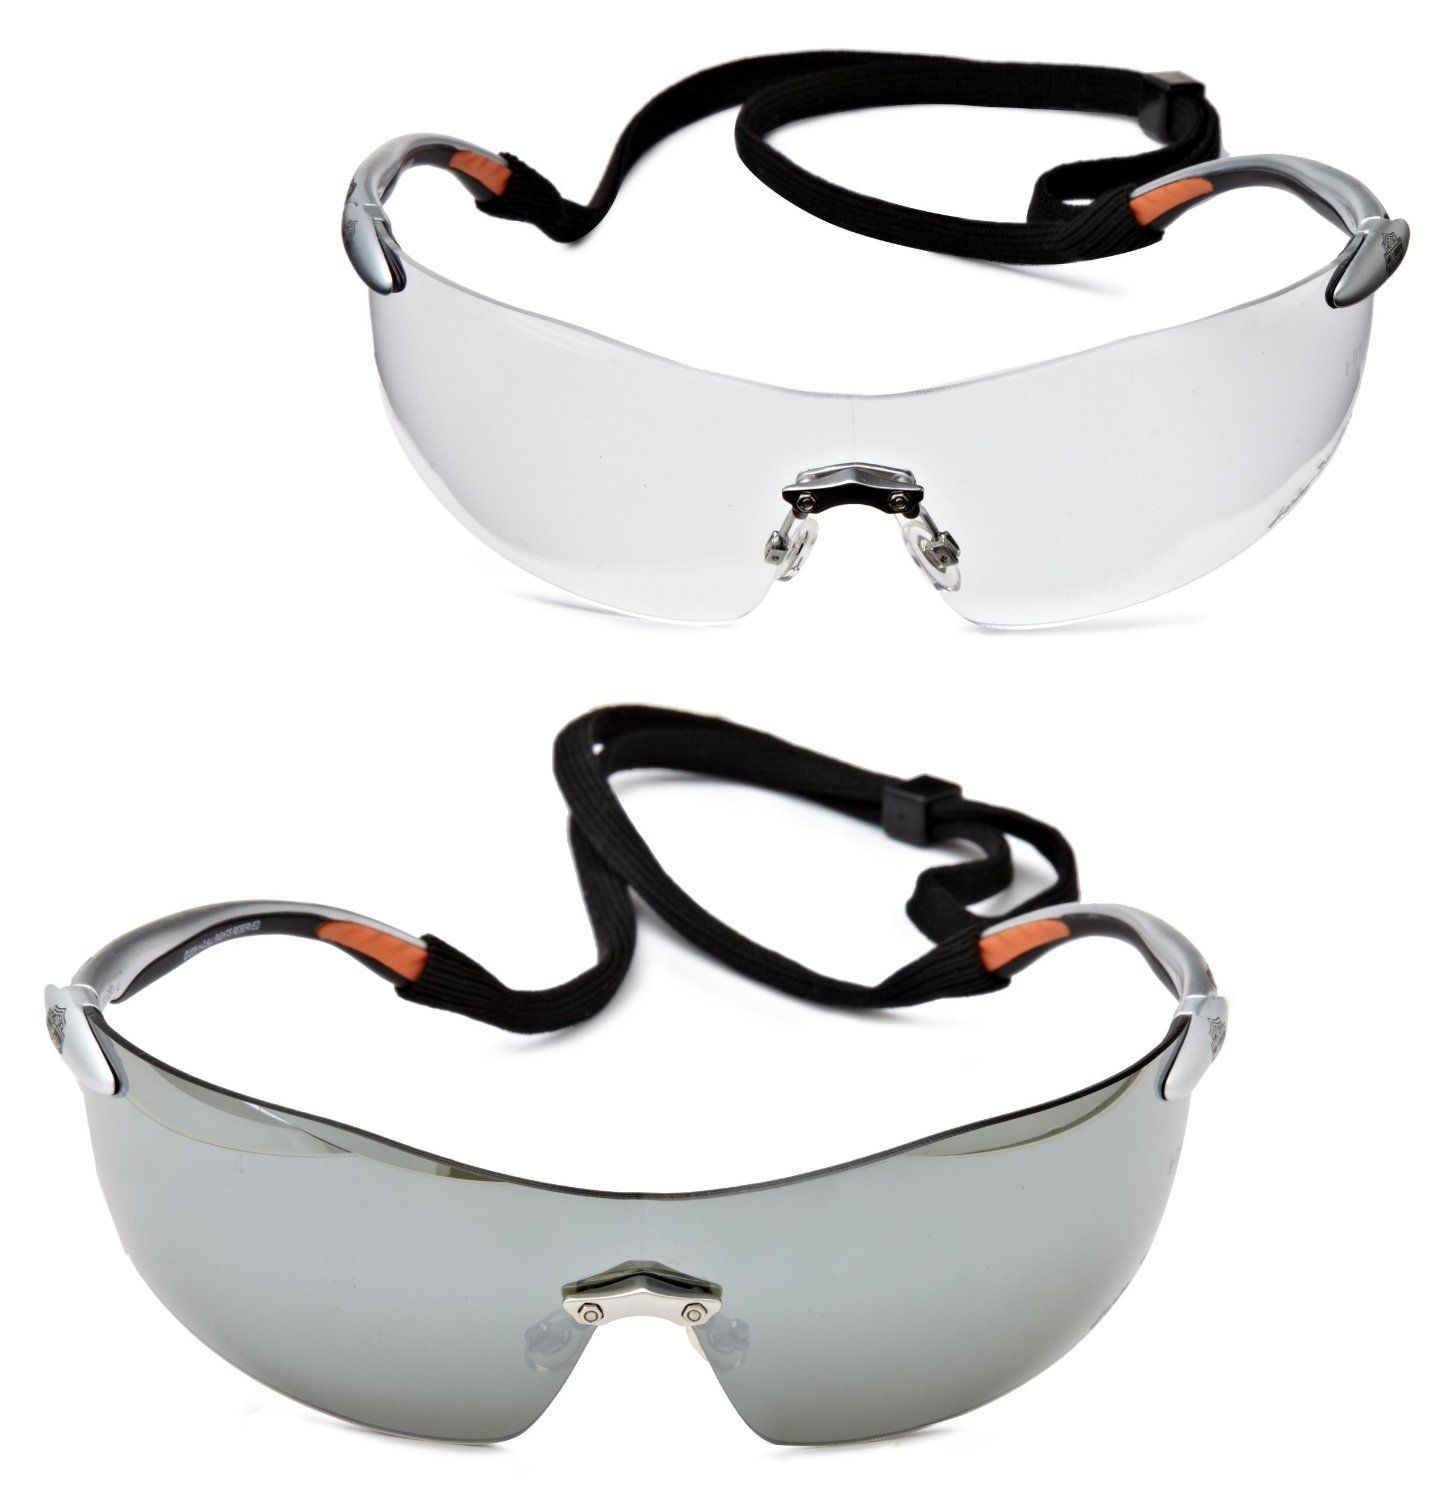 Harley Davidson Eyewear Safety Riding Glasses 2 Pack Set NEW Officially Licensed, used for sale  USA